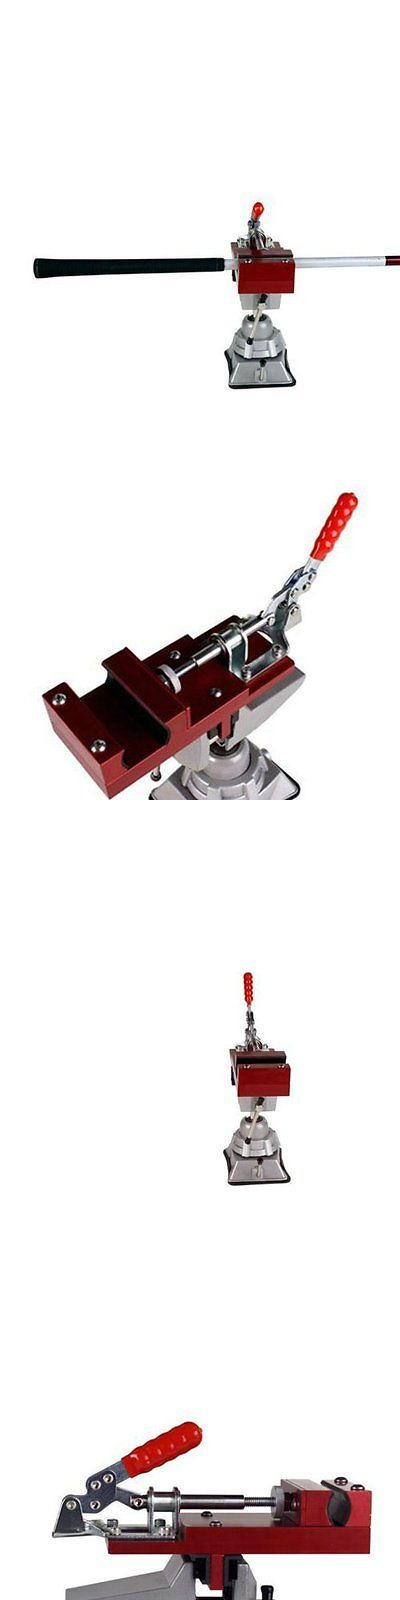 Other Golf Club Components 36192: New Golf Club Quick Clamp Vise Shaft Grip Remover Puller Free Shipping BUY IT NOW ONLY: $133.67